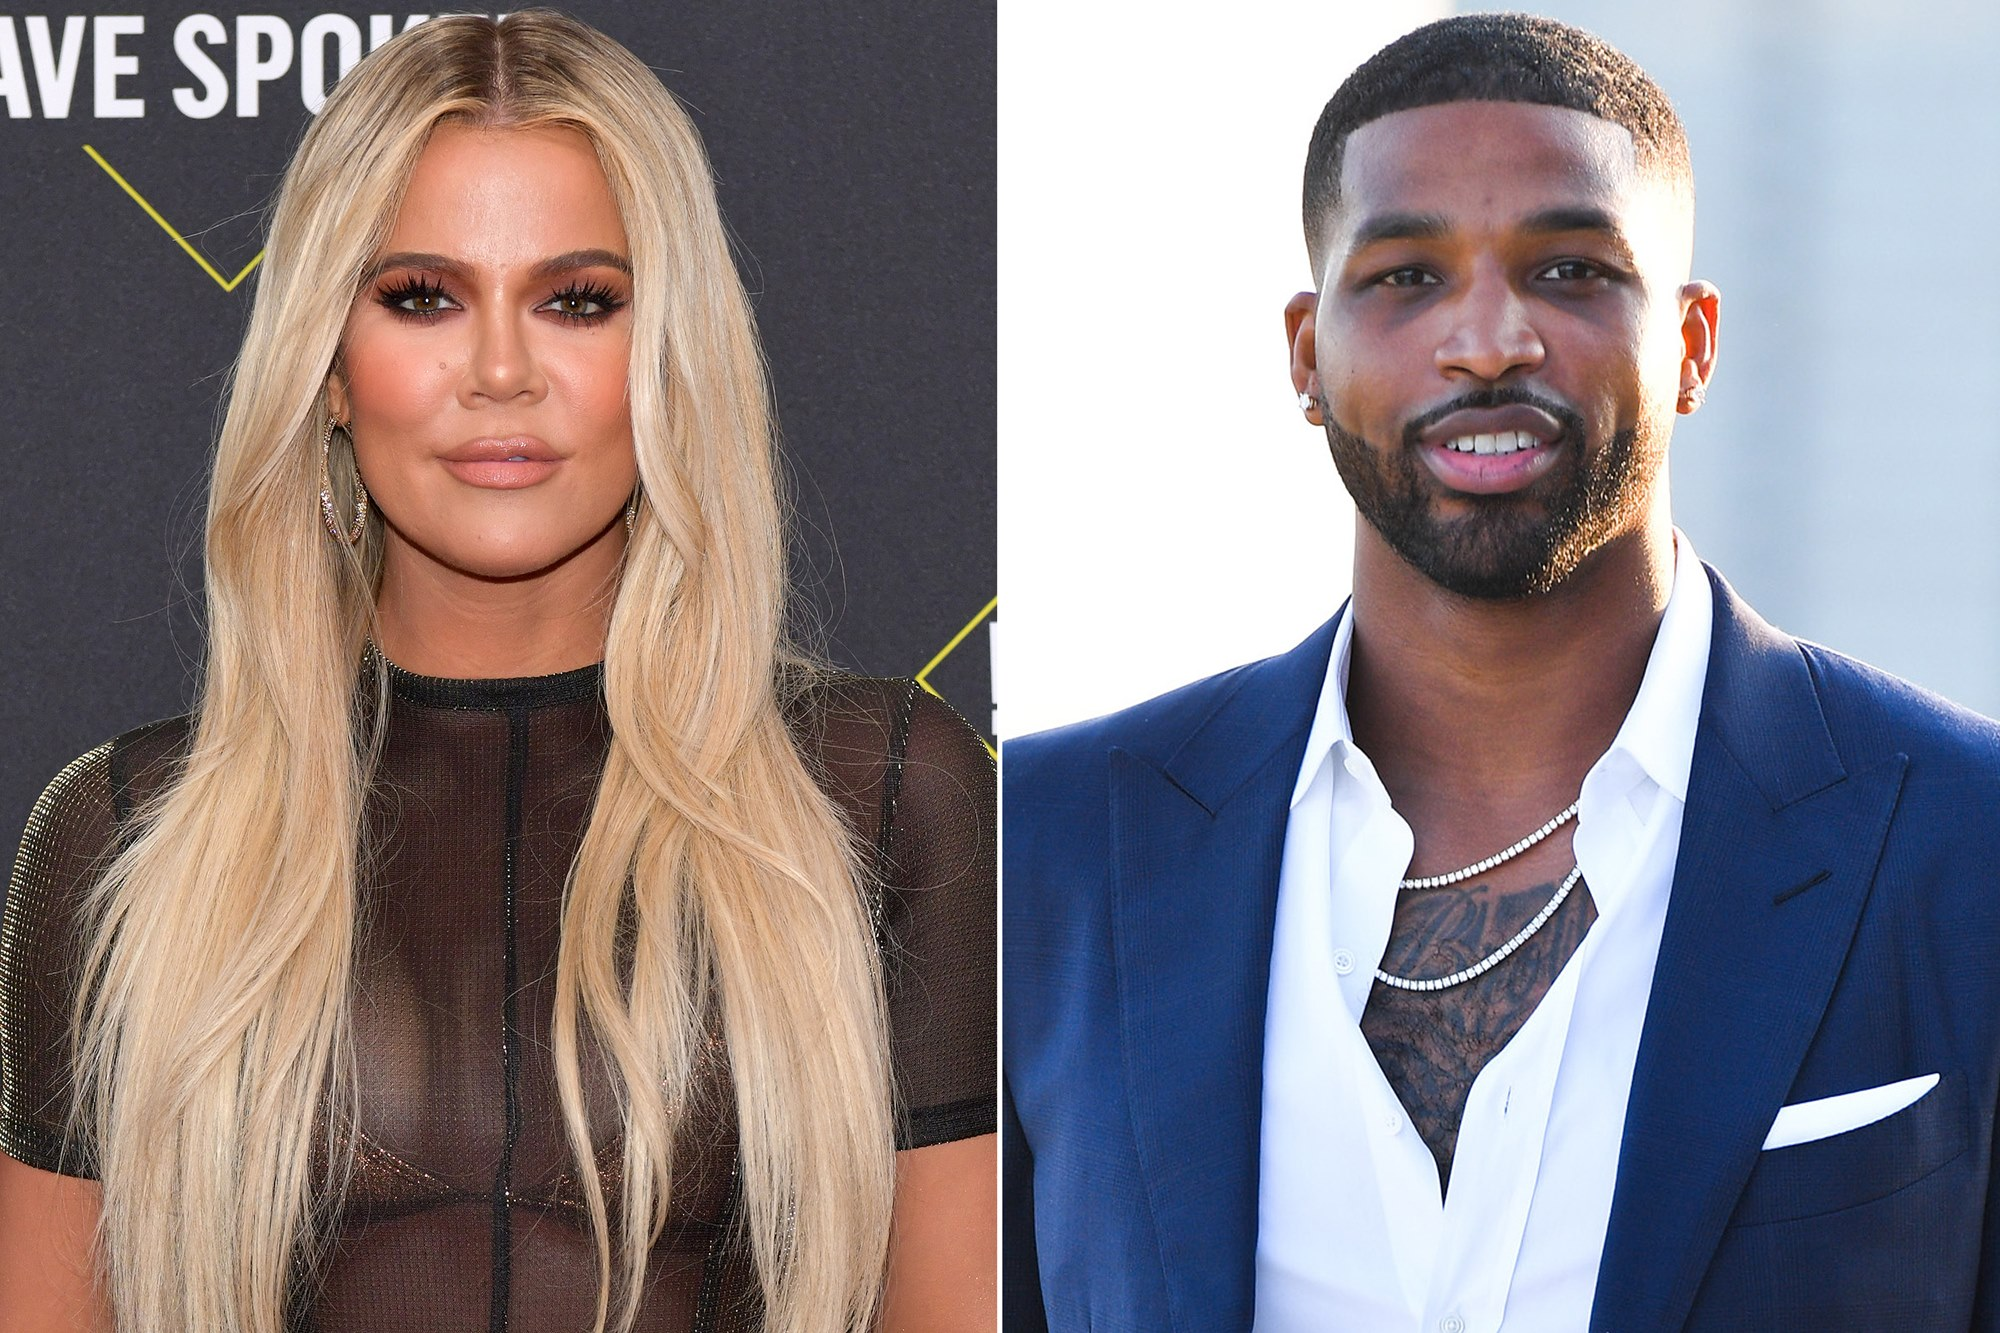 Khloe Kardashian updates status with Tristan Thompson Wonderwall